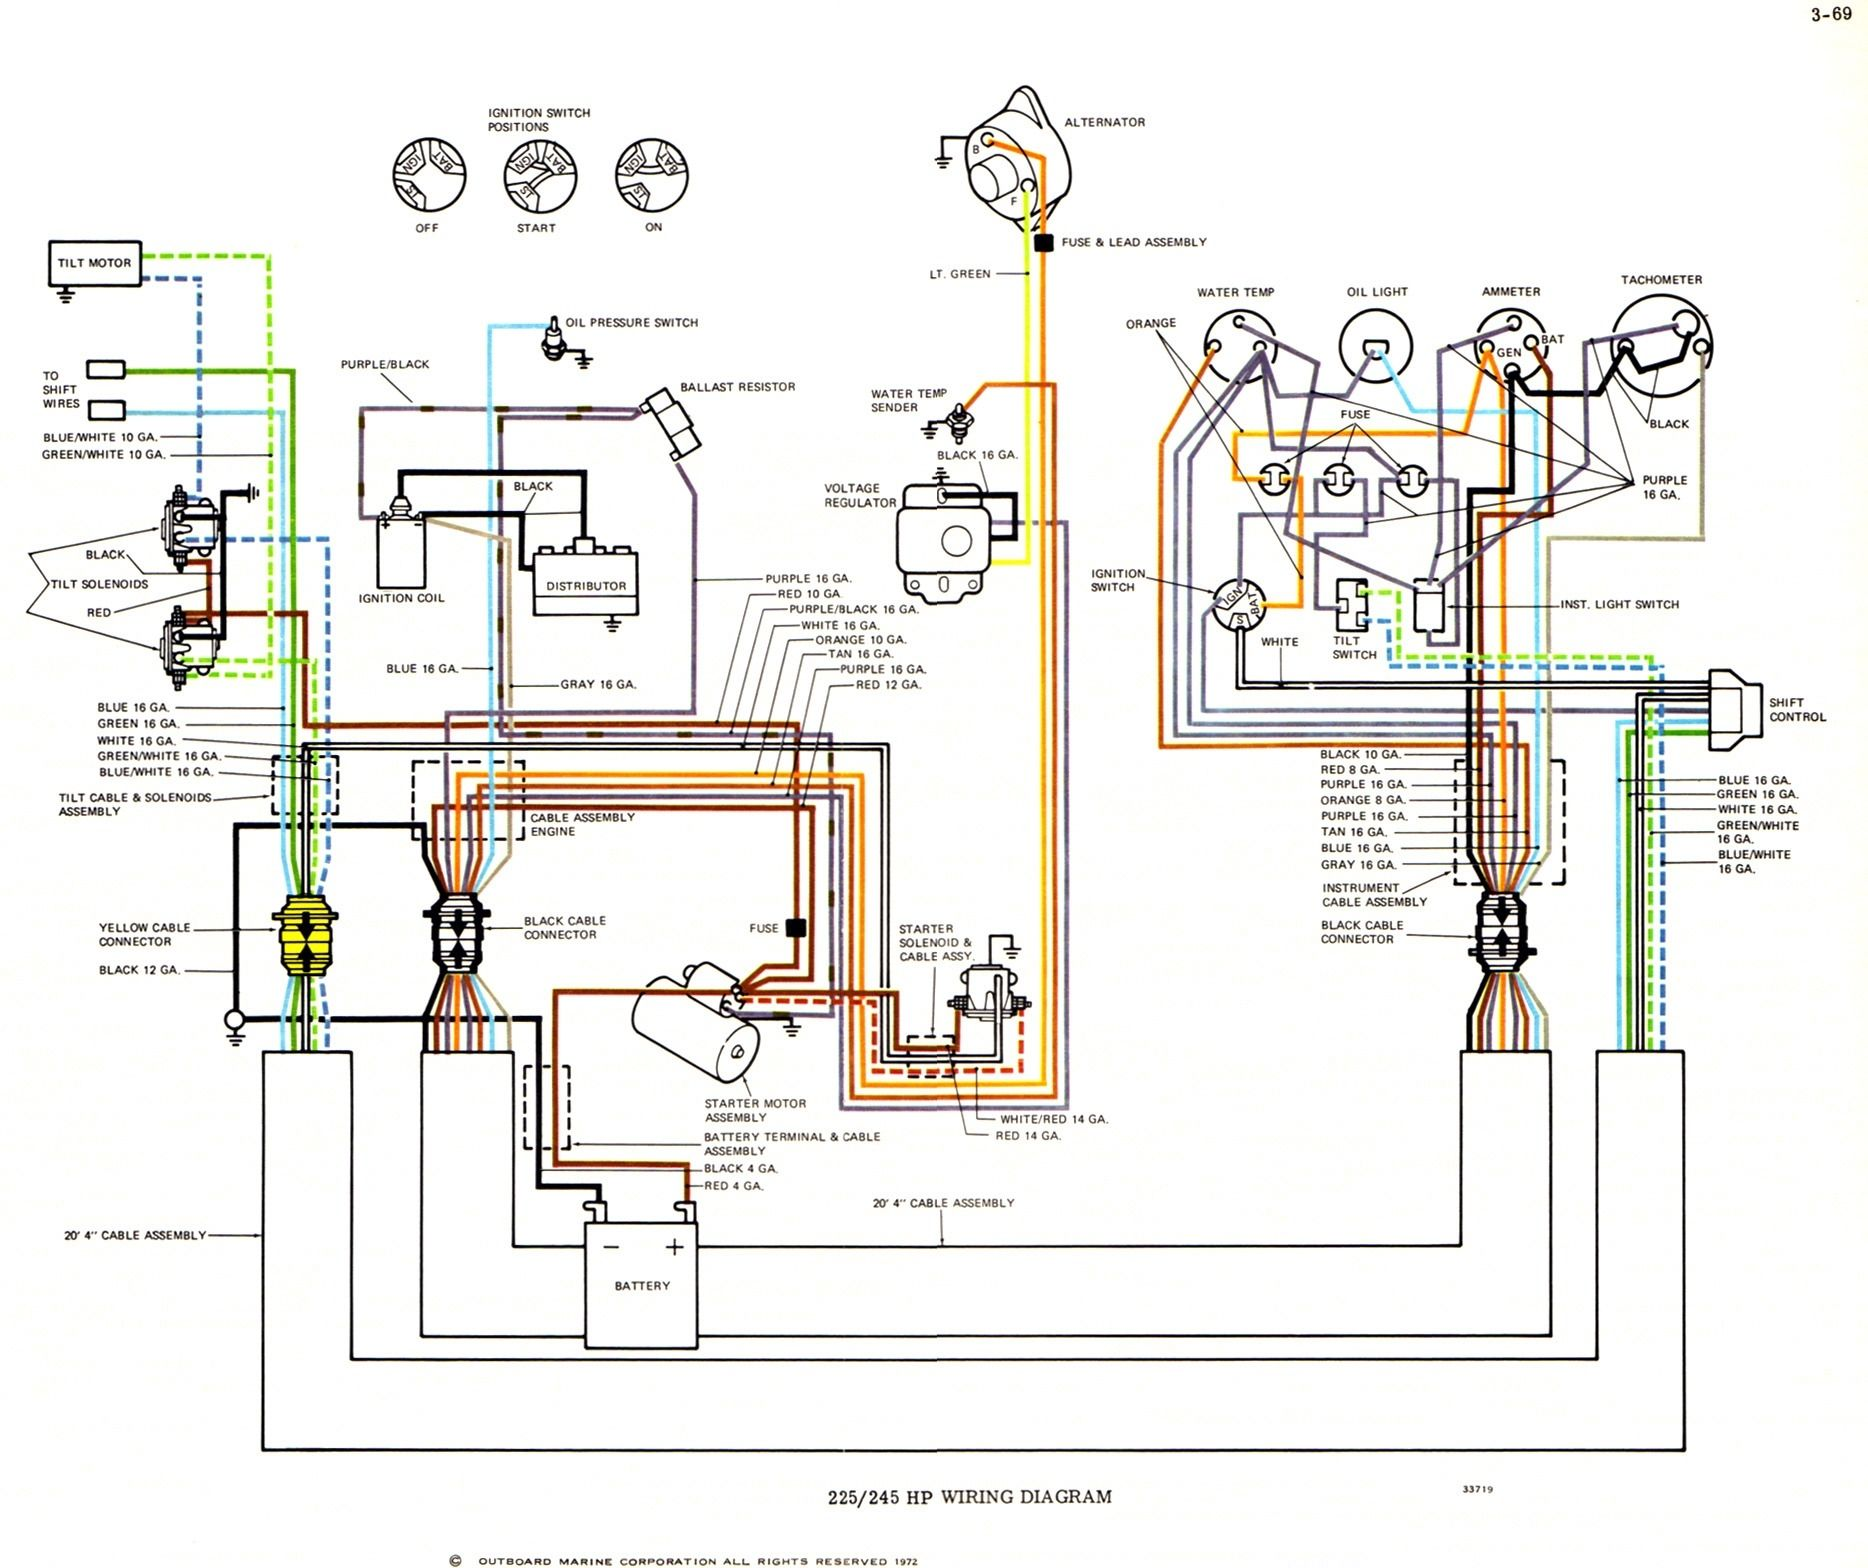 jet boat fuse box location wiring diagram jet boat fuse box [ 1868 x 1568 Pixel ]